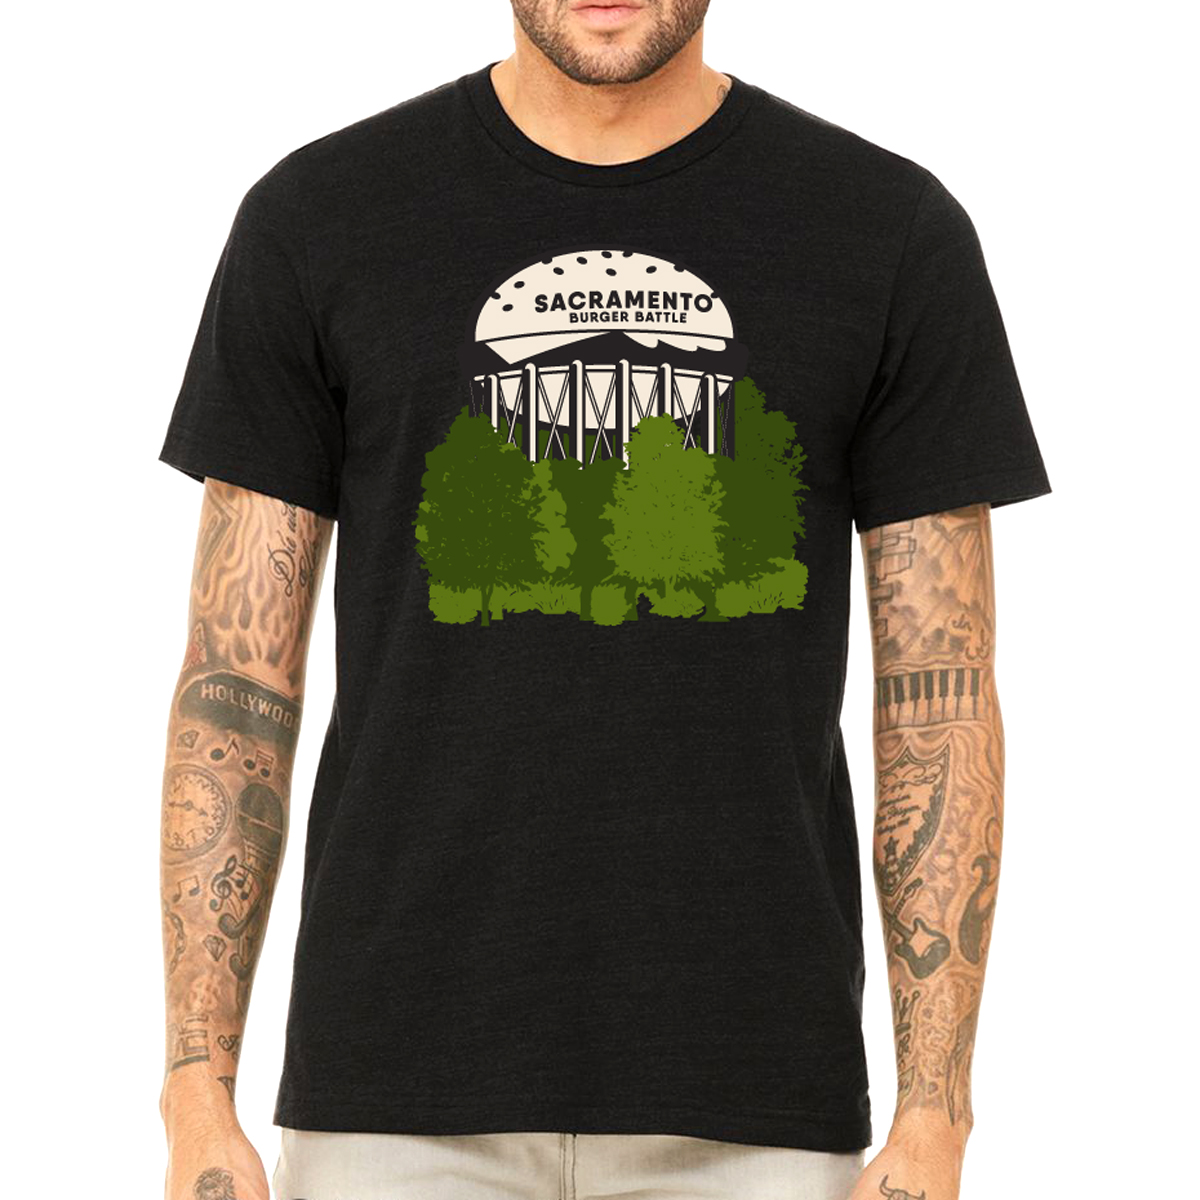 sacramento burger battle water tower t-shirt design printed on a black t-shirt